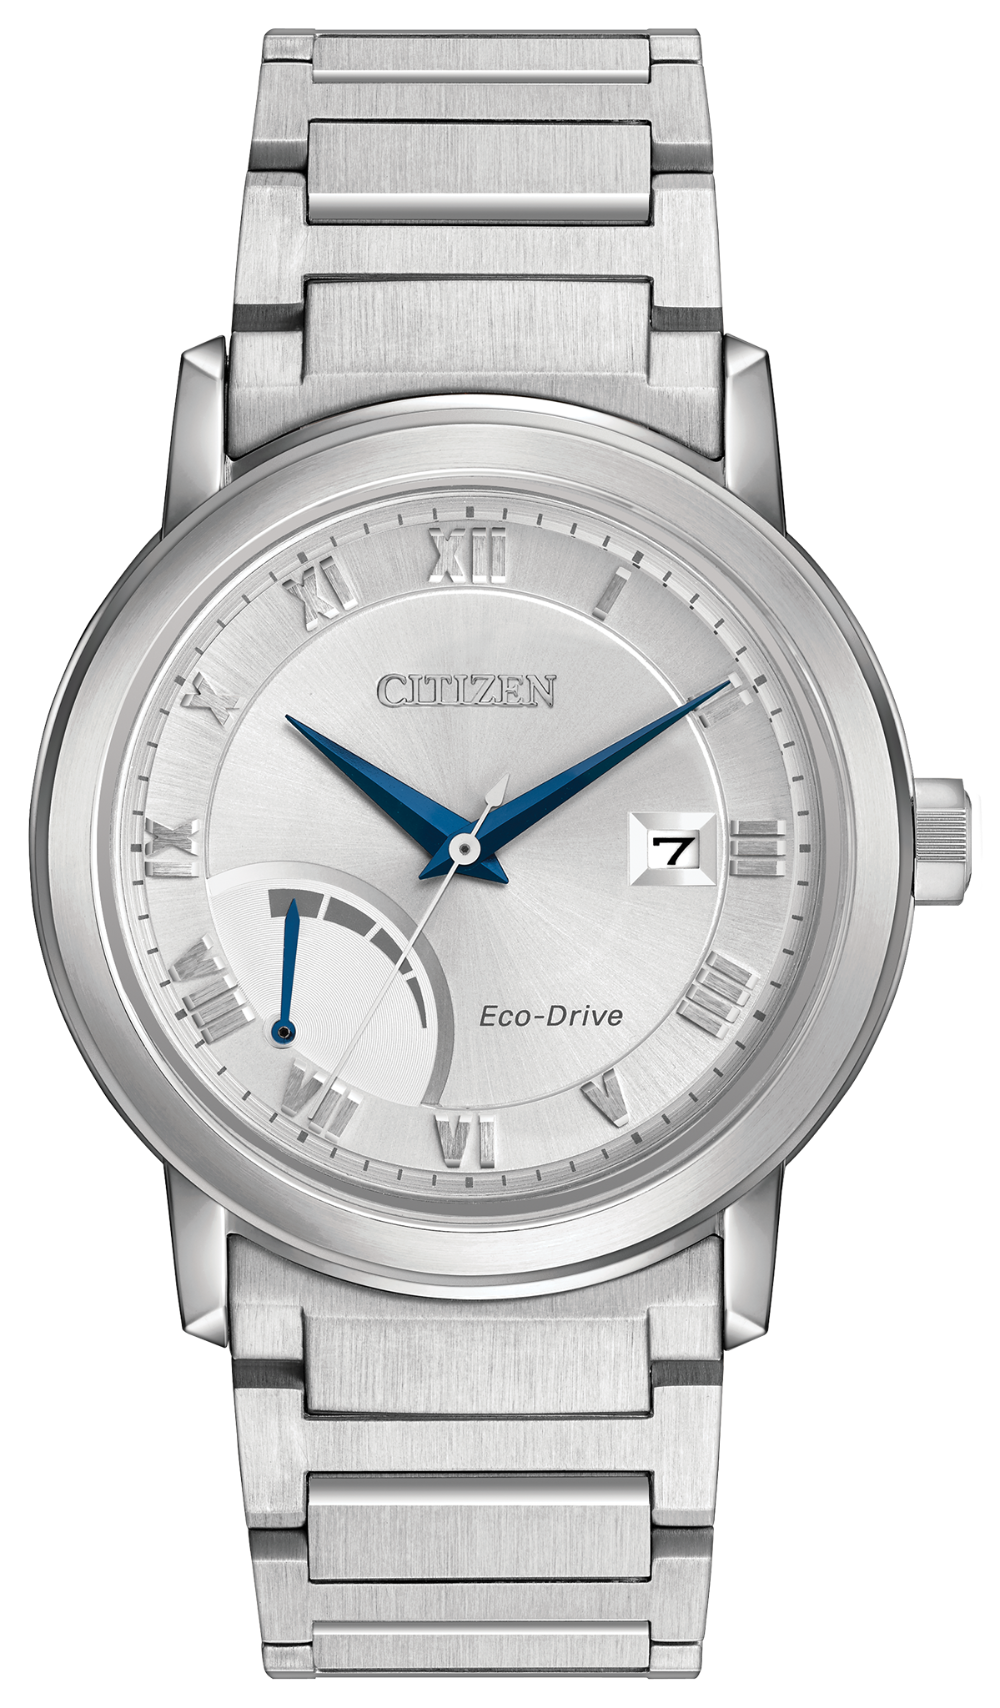 Citizen Men's PRT Eco-Drive Watch with Metal Band Blue Hands in Stainless Steel - AW7020-51A